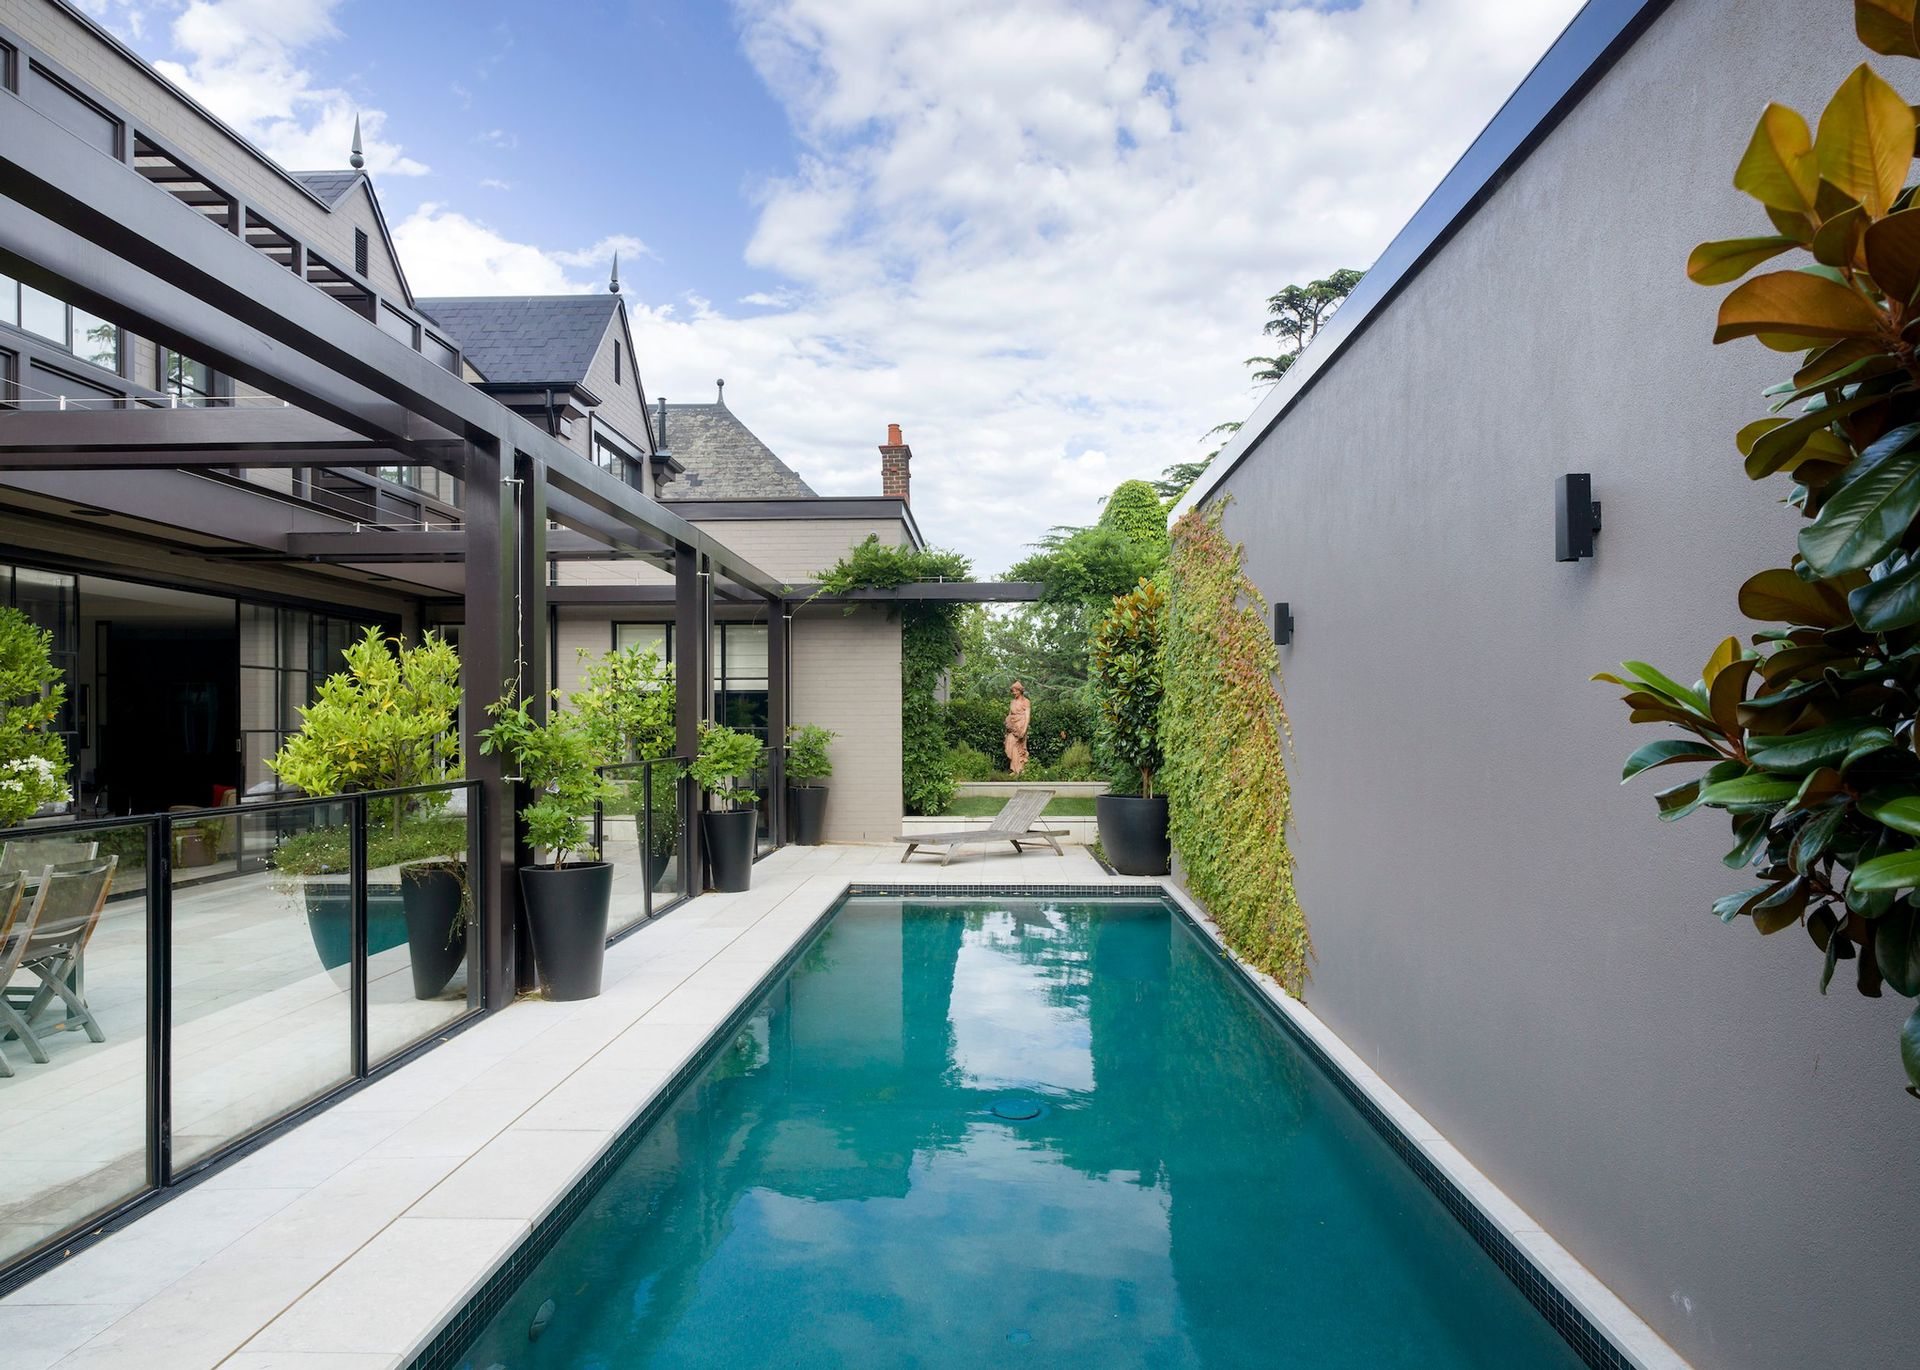 the private outdoor pool